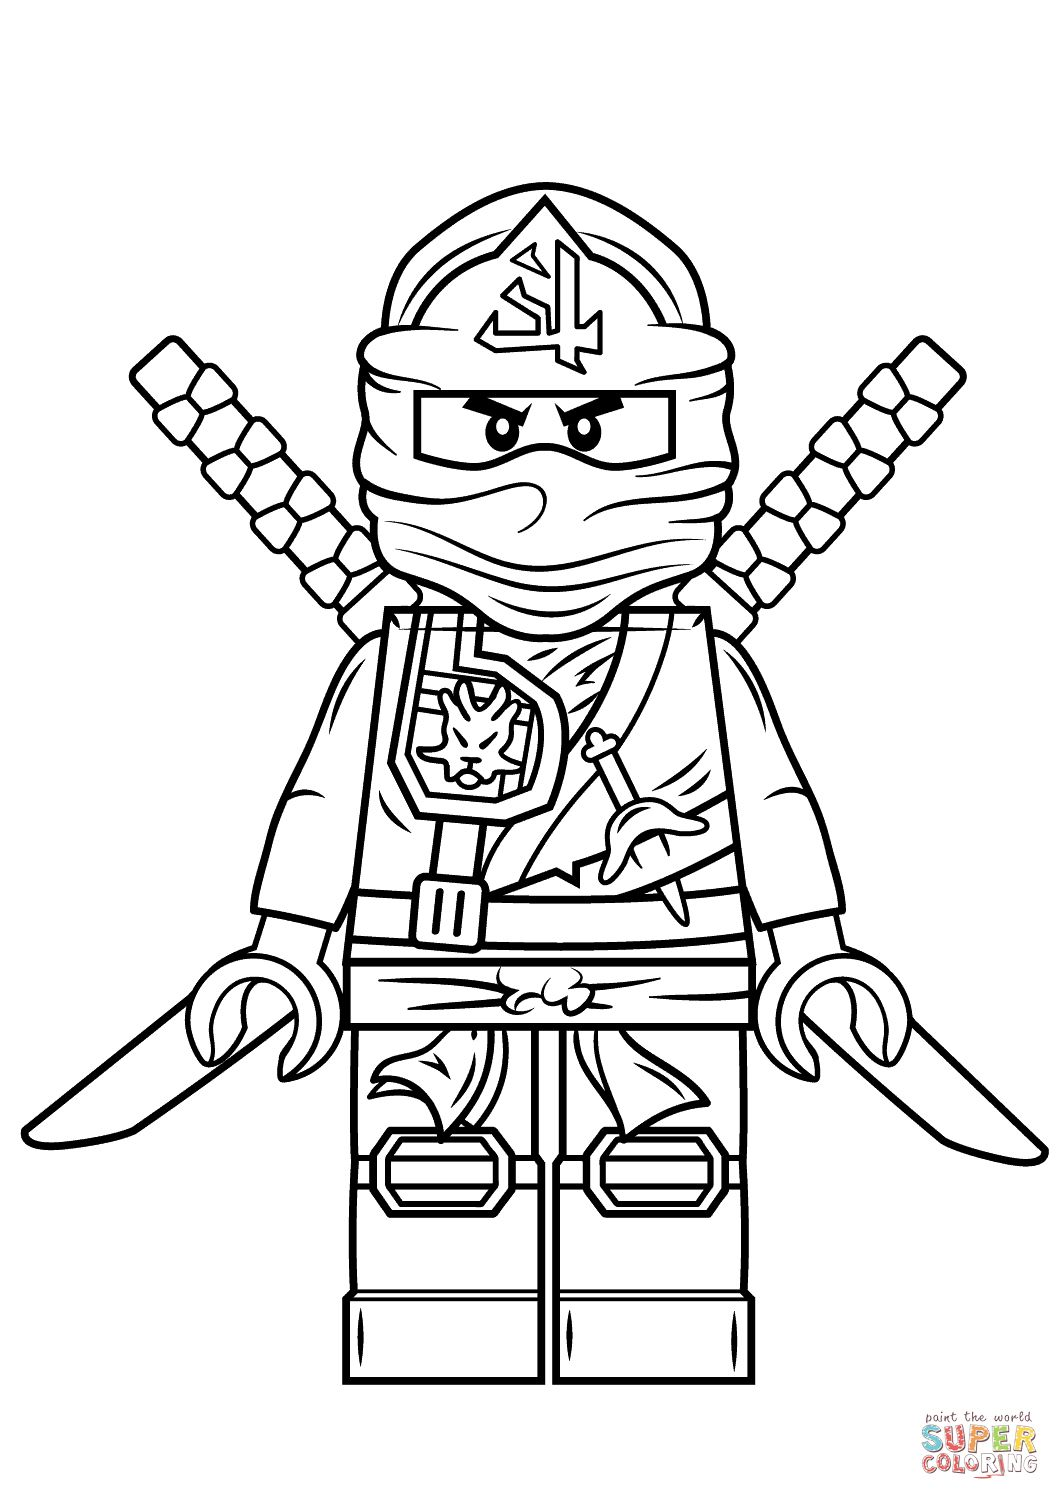 Afficher L Image D Origine Coloriage En 2018 Pinterest Collection Afficher L Image D Origine Coloriage En 20 Coloriage Ninjago Coloriage Lego Dessin Lego